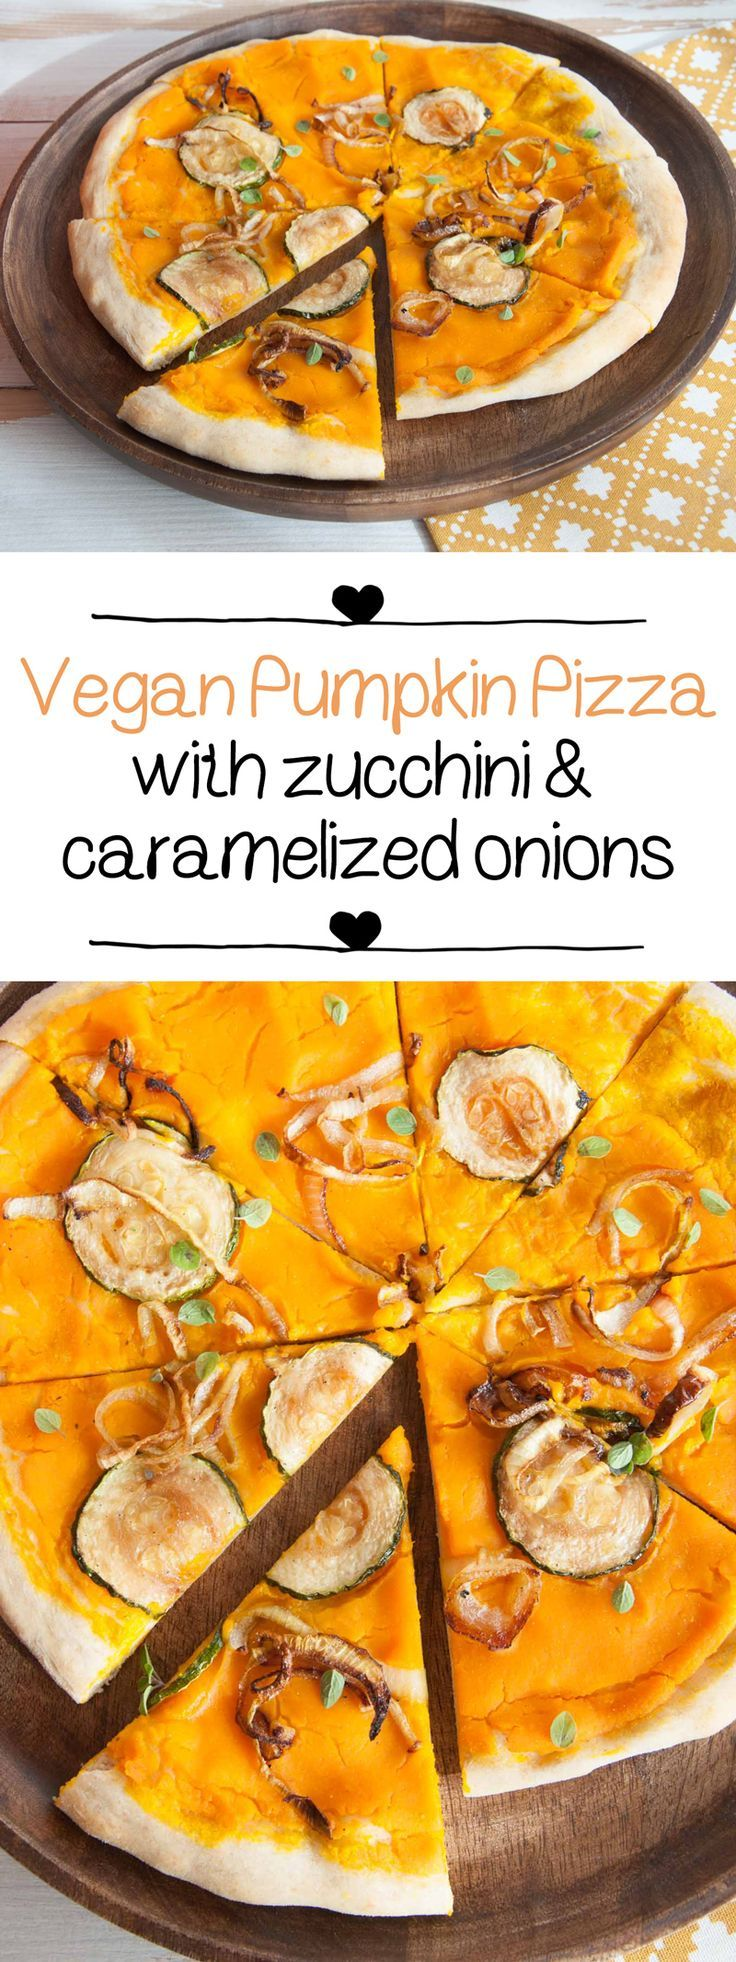 Vegan Pumpkin Pizza with zucchini and caramelized onions | ElephantasticVegan.com